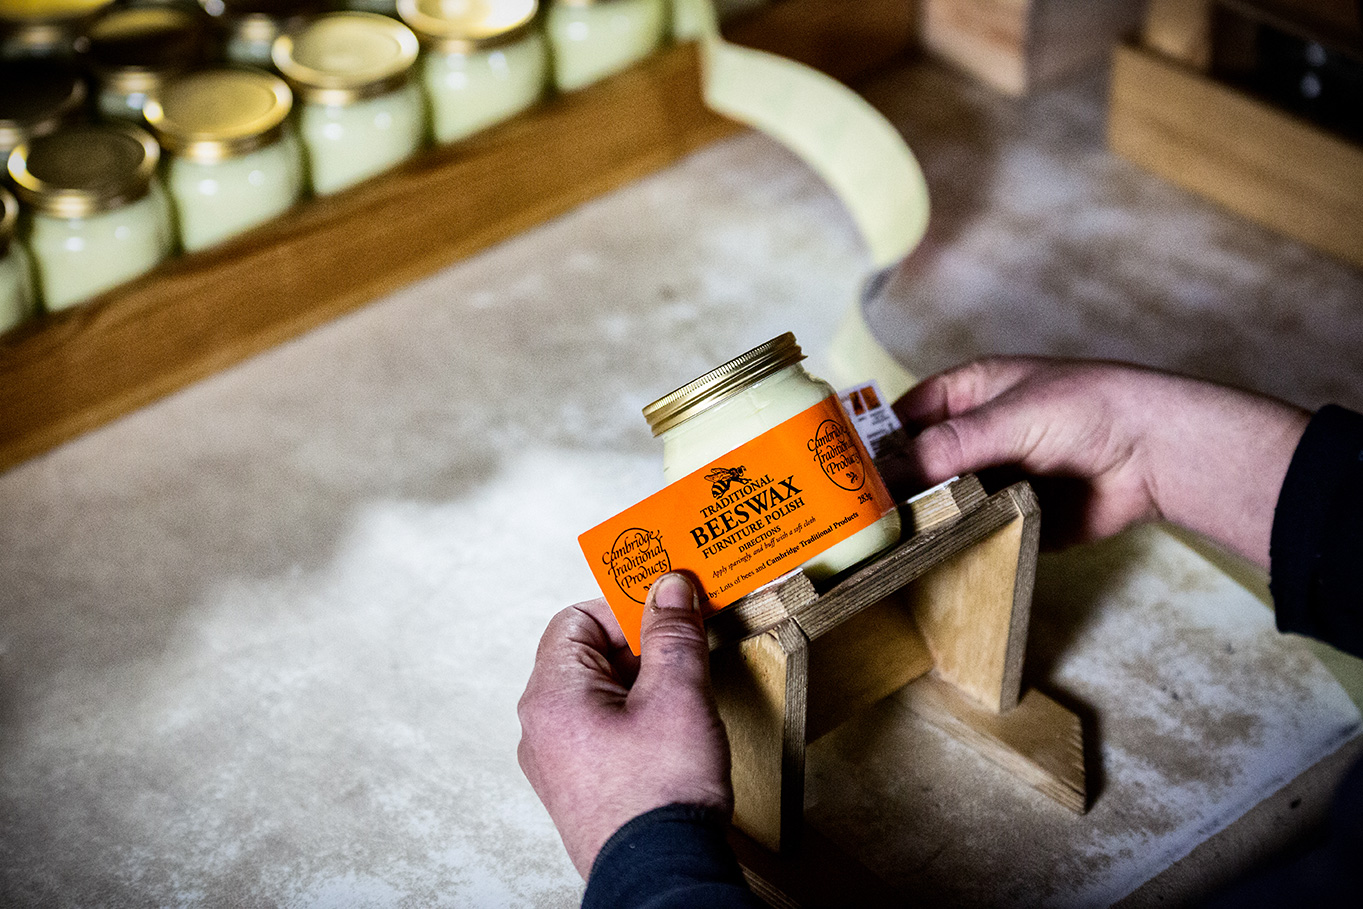 Labeling jars of hand made beeswax furniture polish - Cambridge Traditional Products